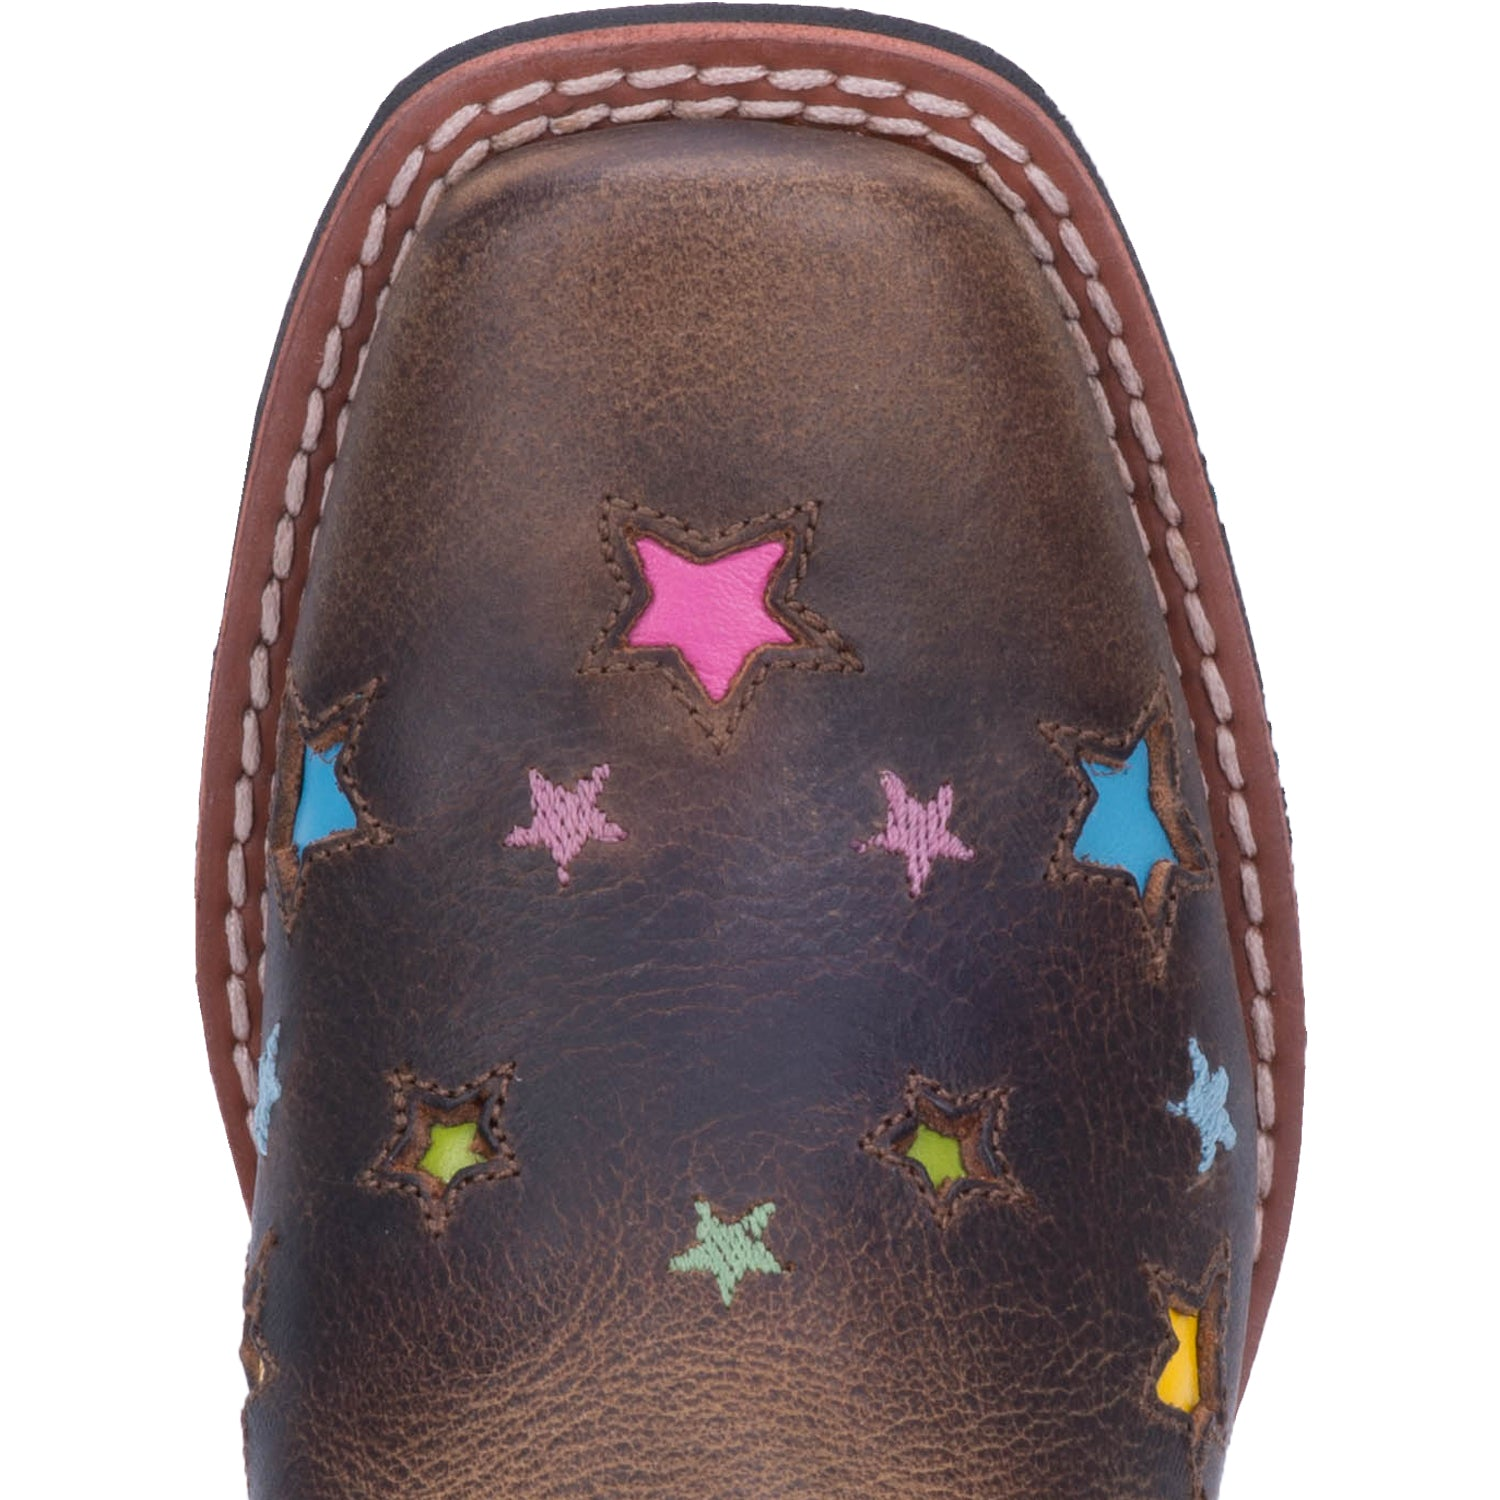 STARLETT LEATHER CHILDREN'S BOOT 15521811202090